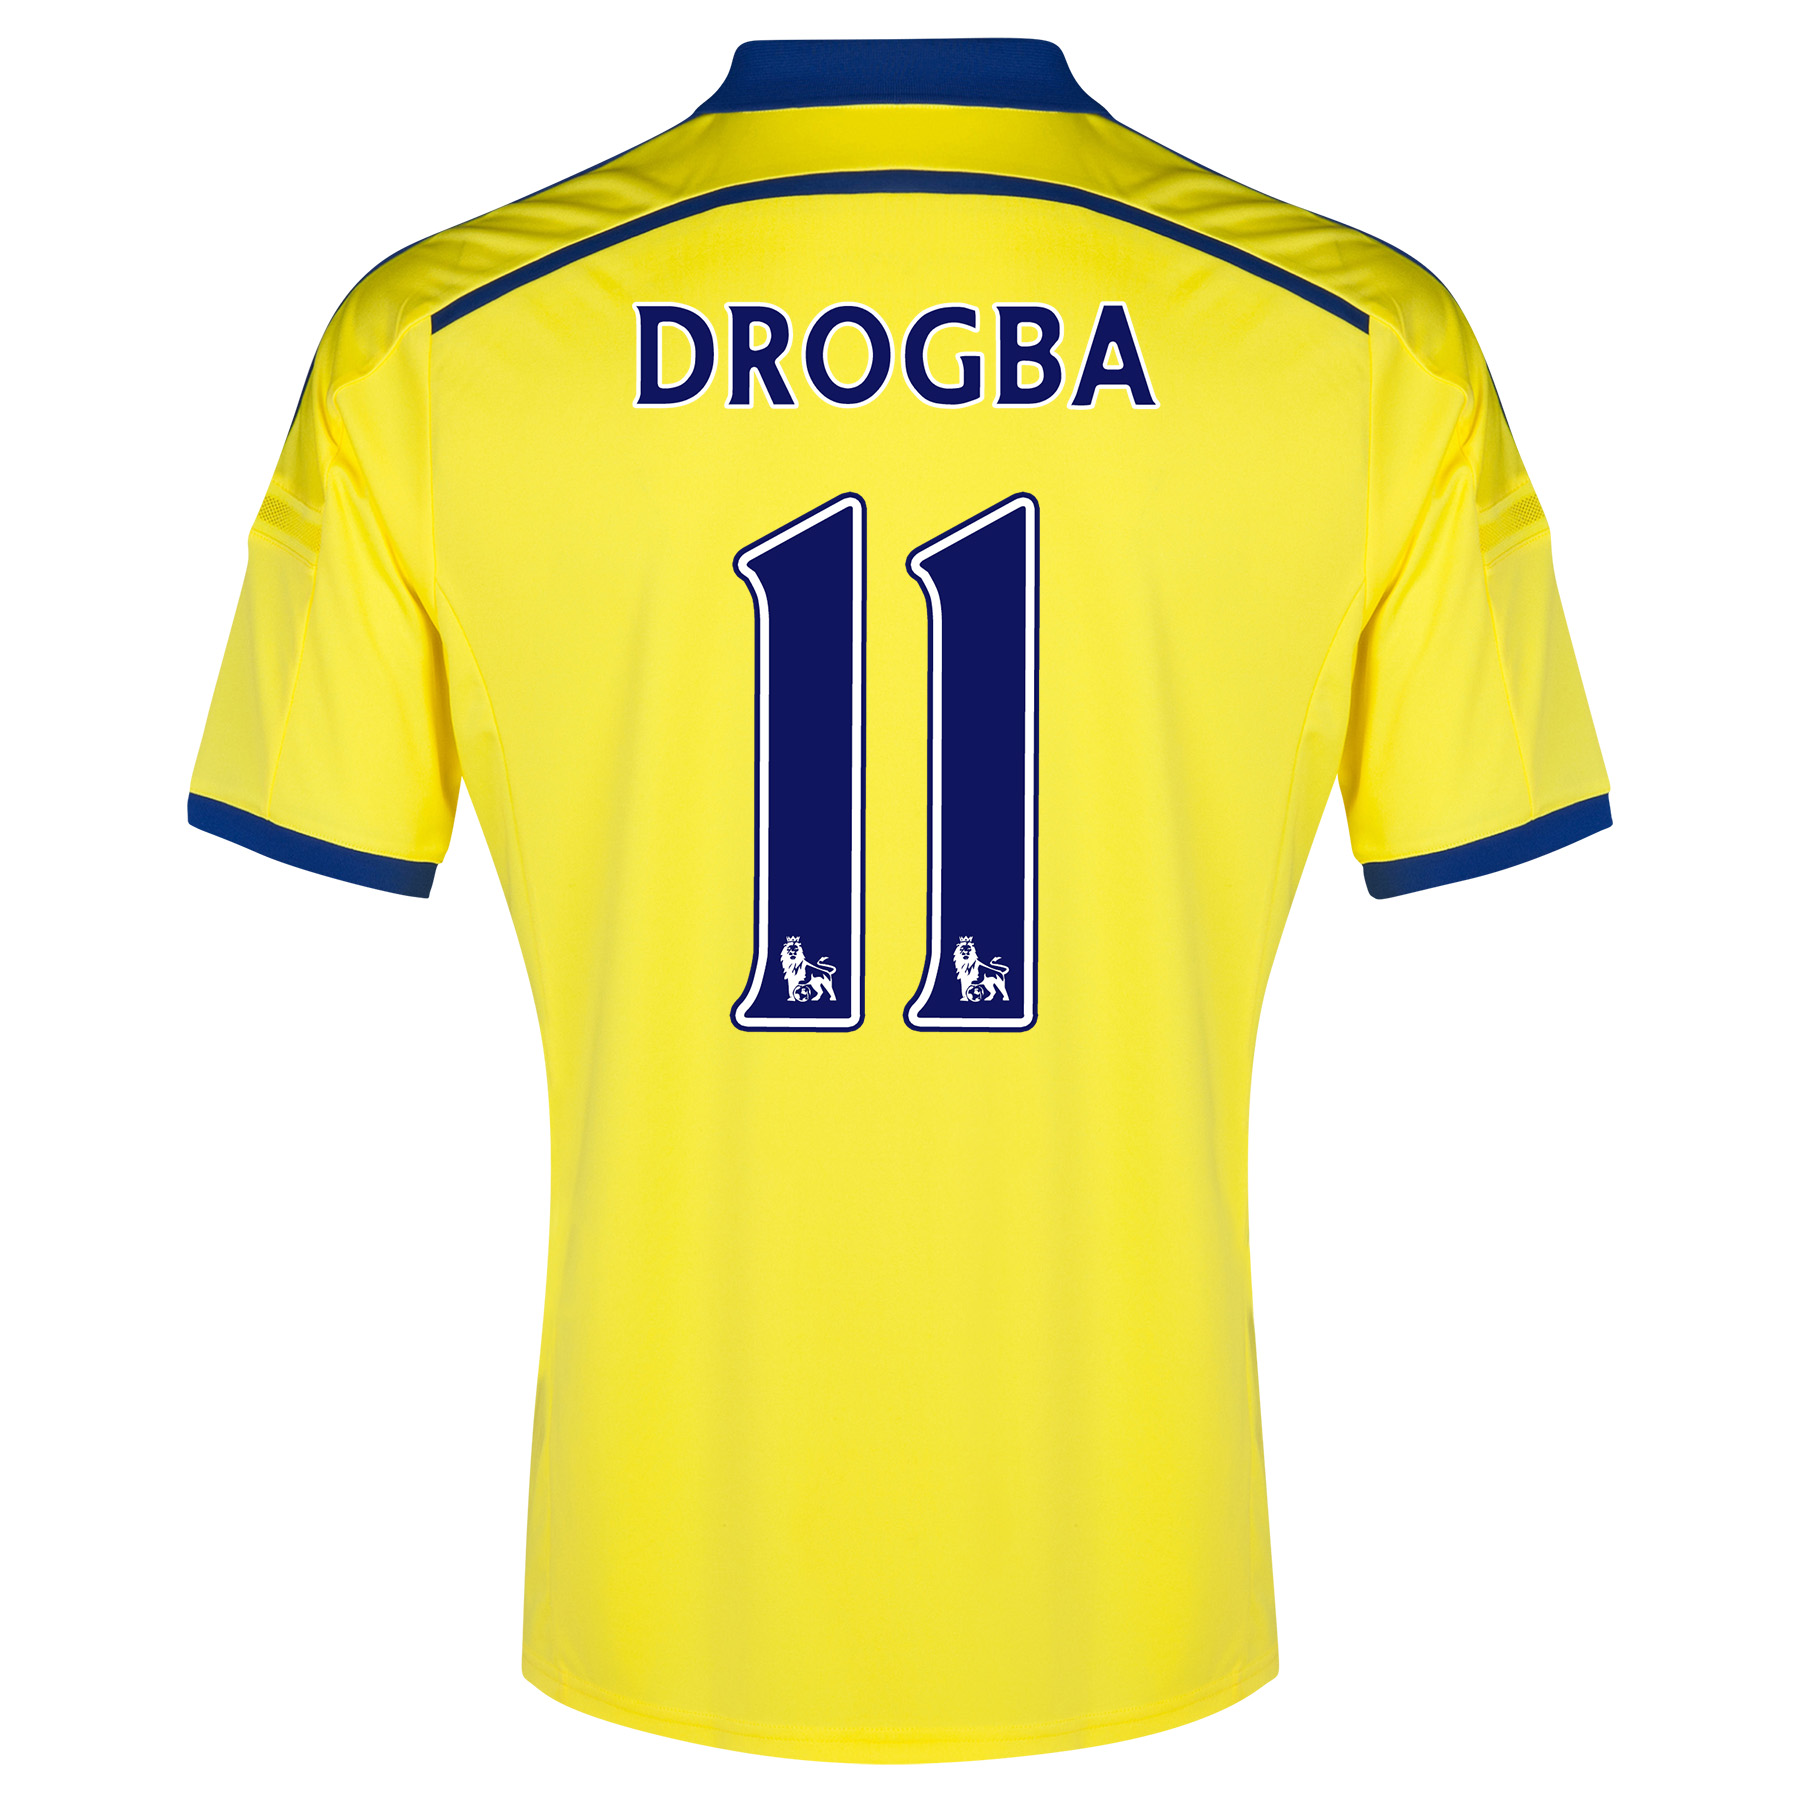 Chelsea Away Shirt 2014/15 with Drogba 15 printing